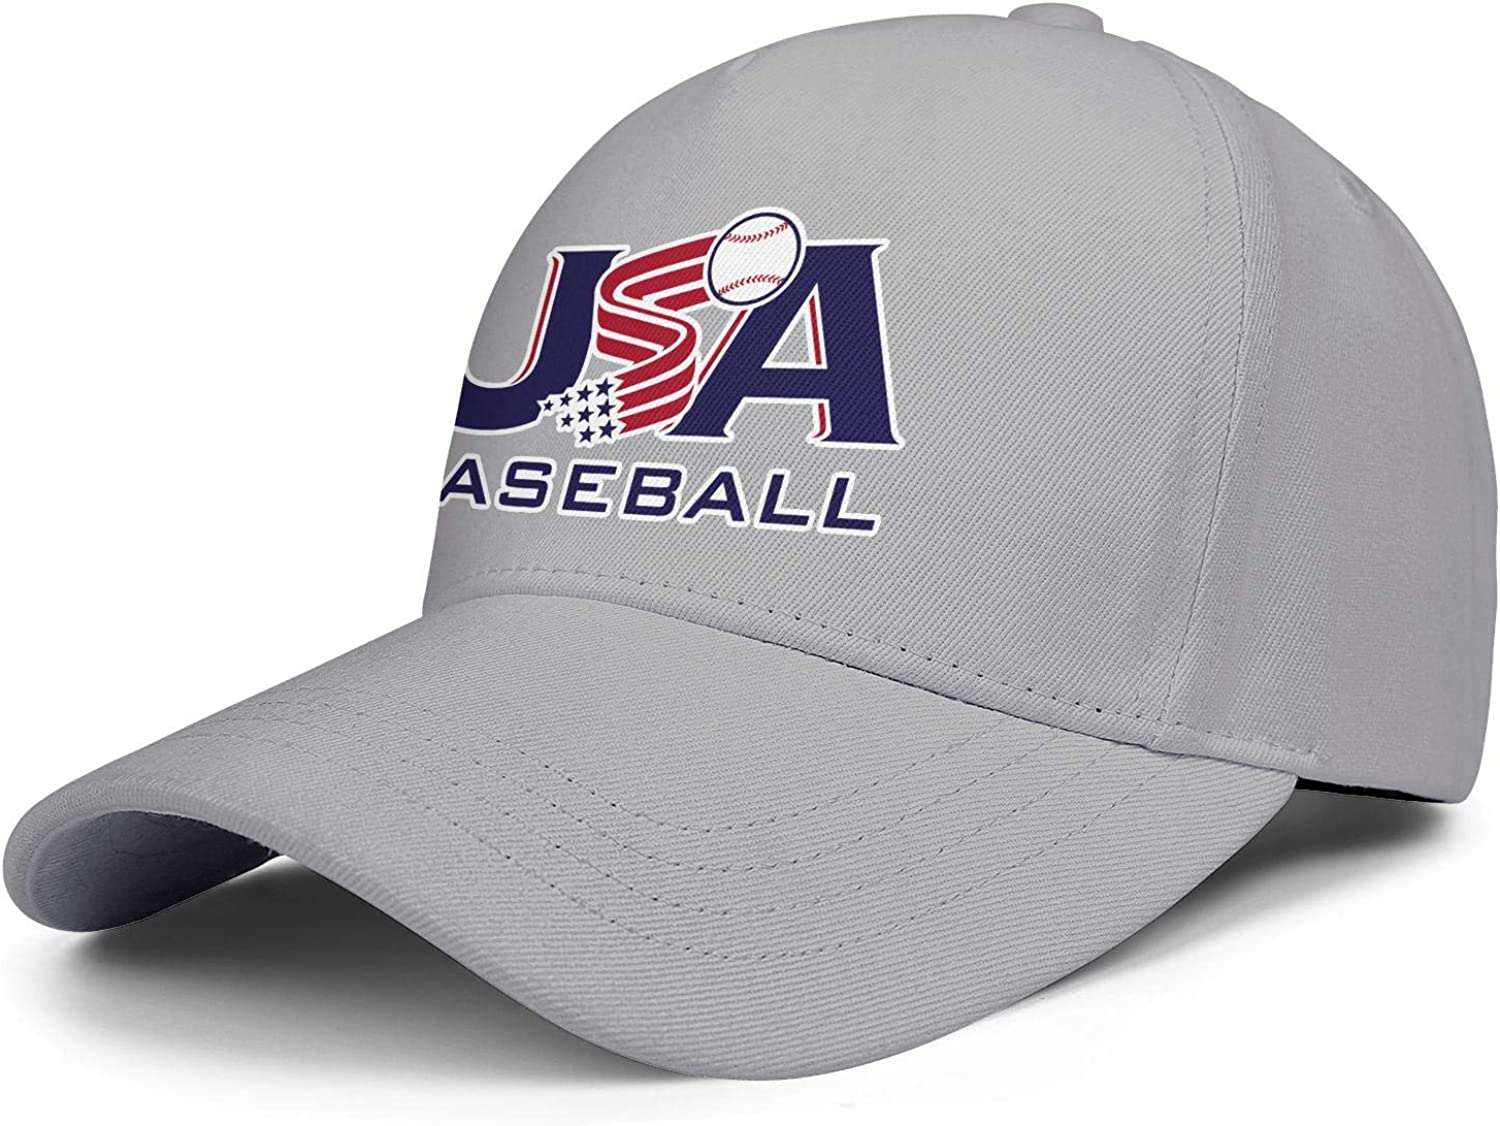 ahtbht USA Baseball Logos Snapback Caps Hip Hop Rugged Mens Baseball Cap